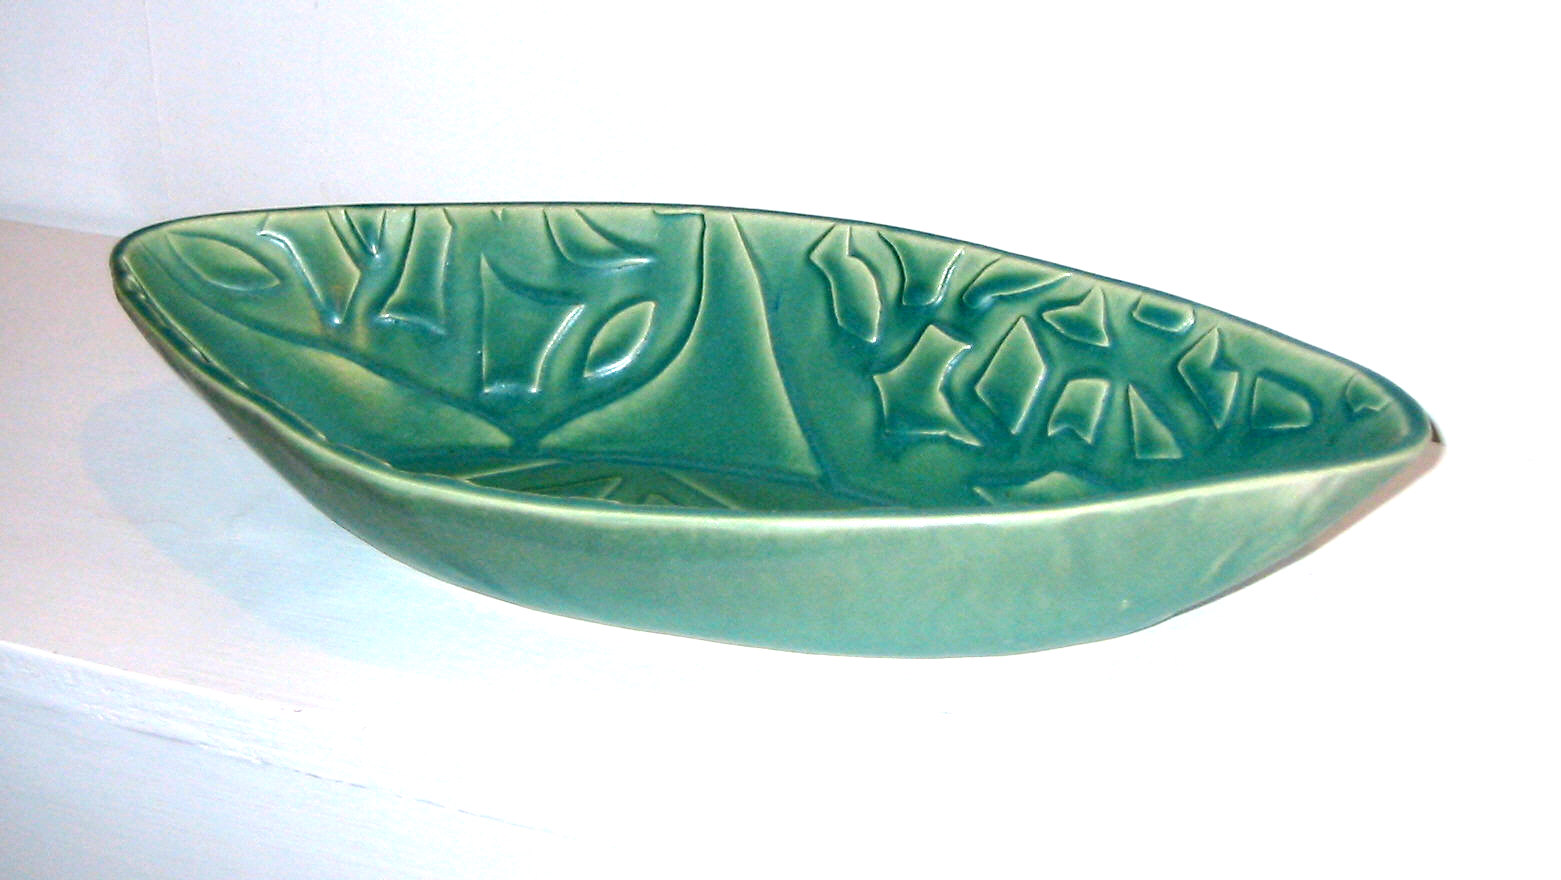 almond-shaped dish